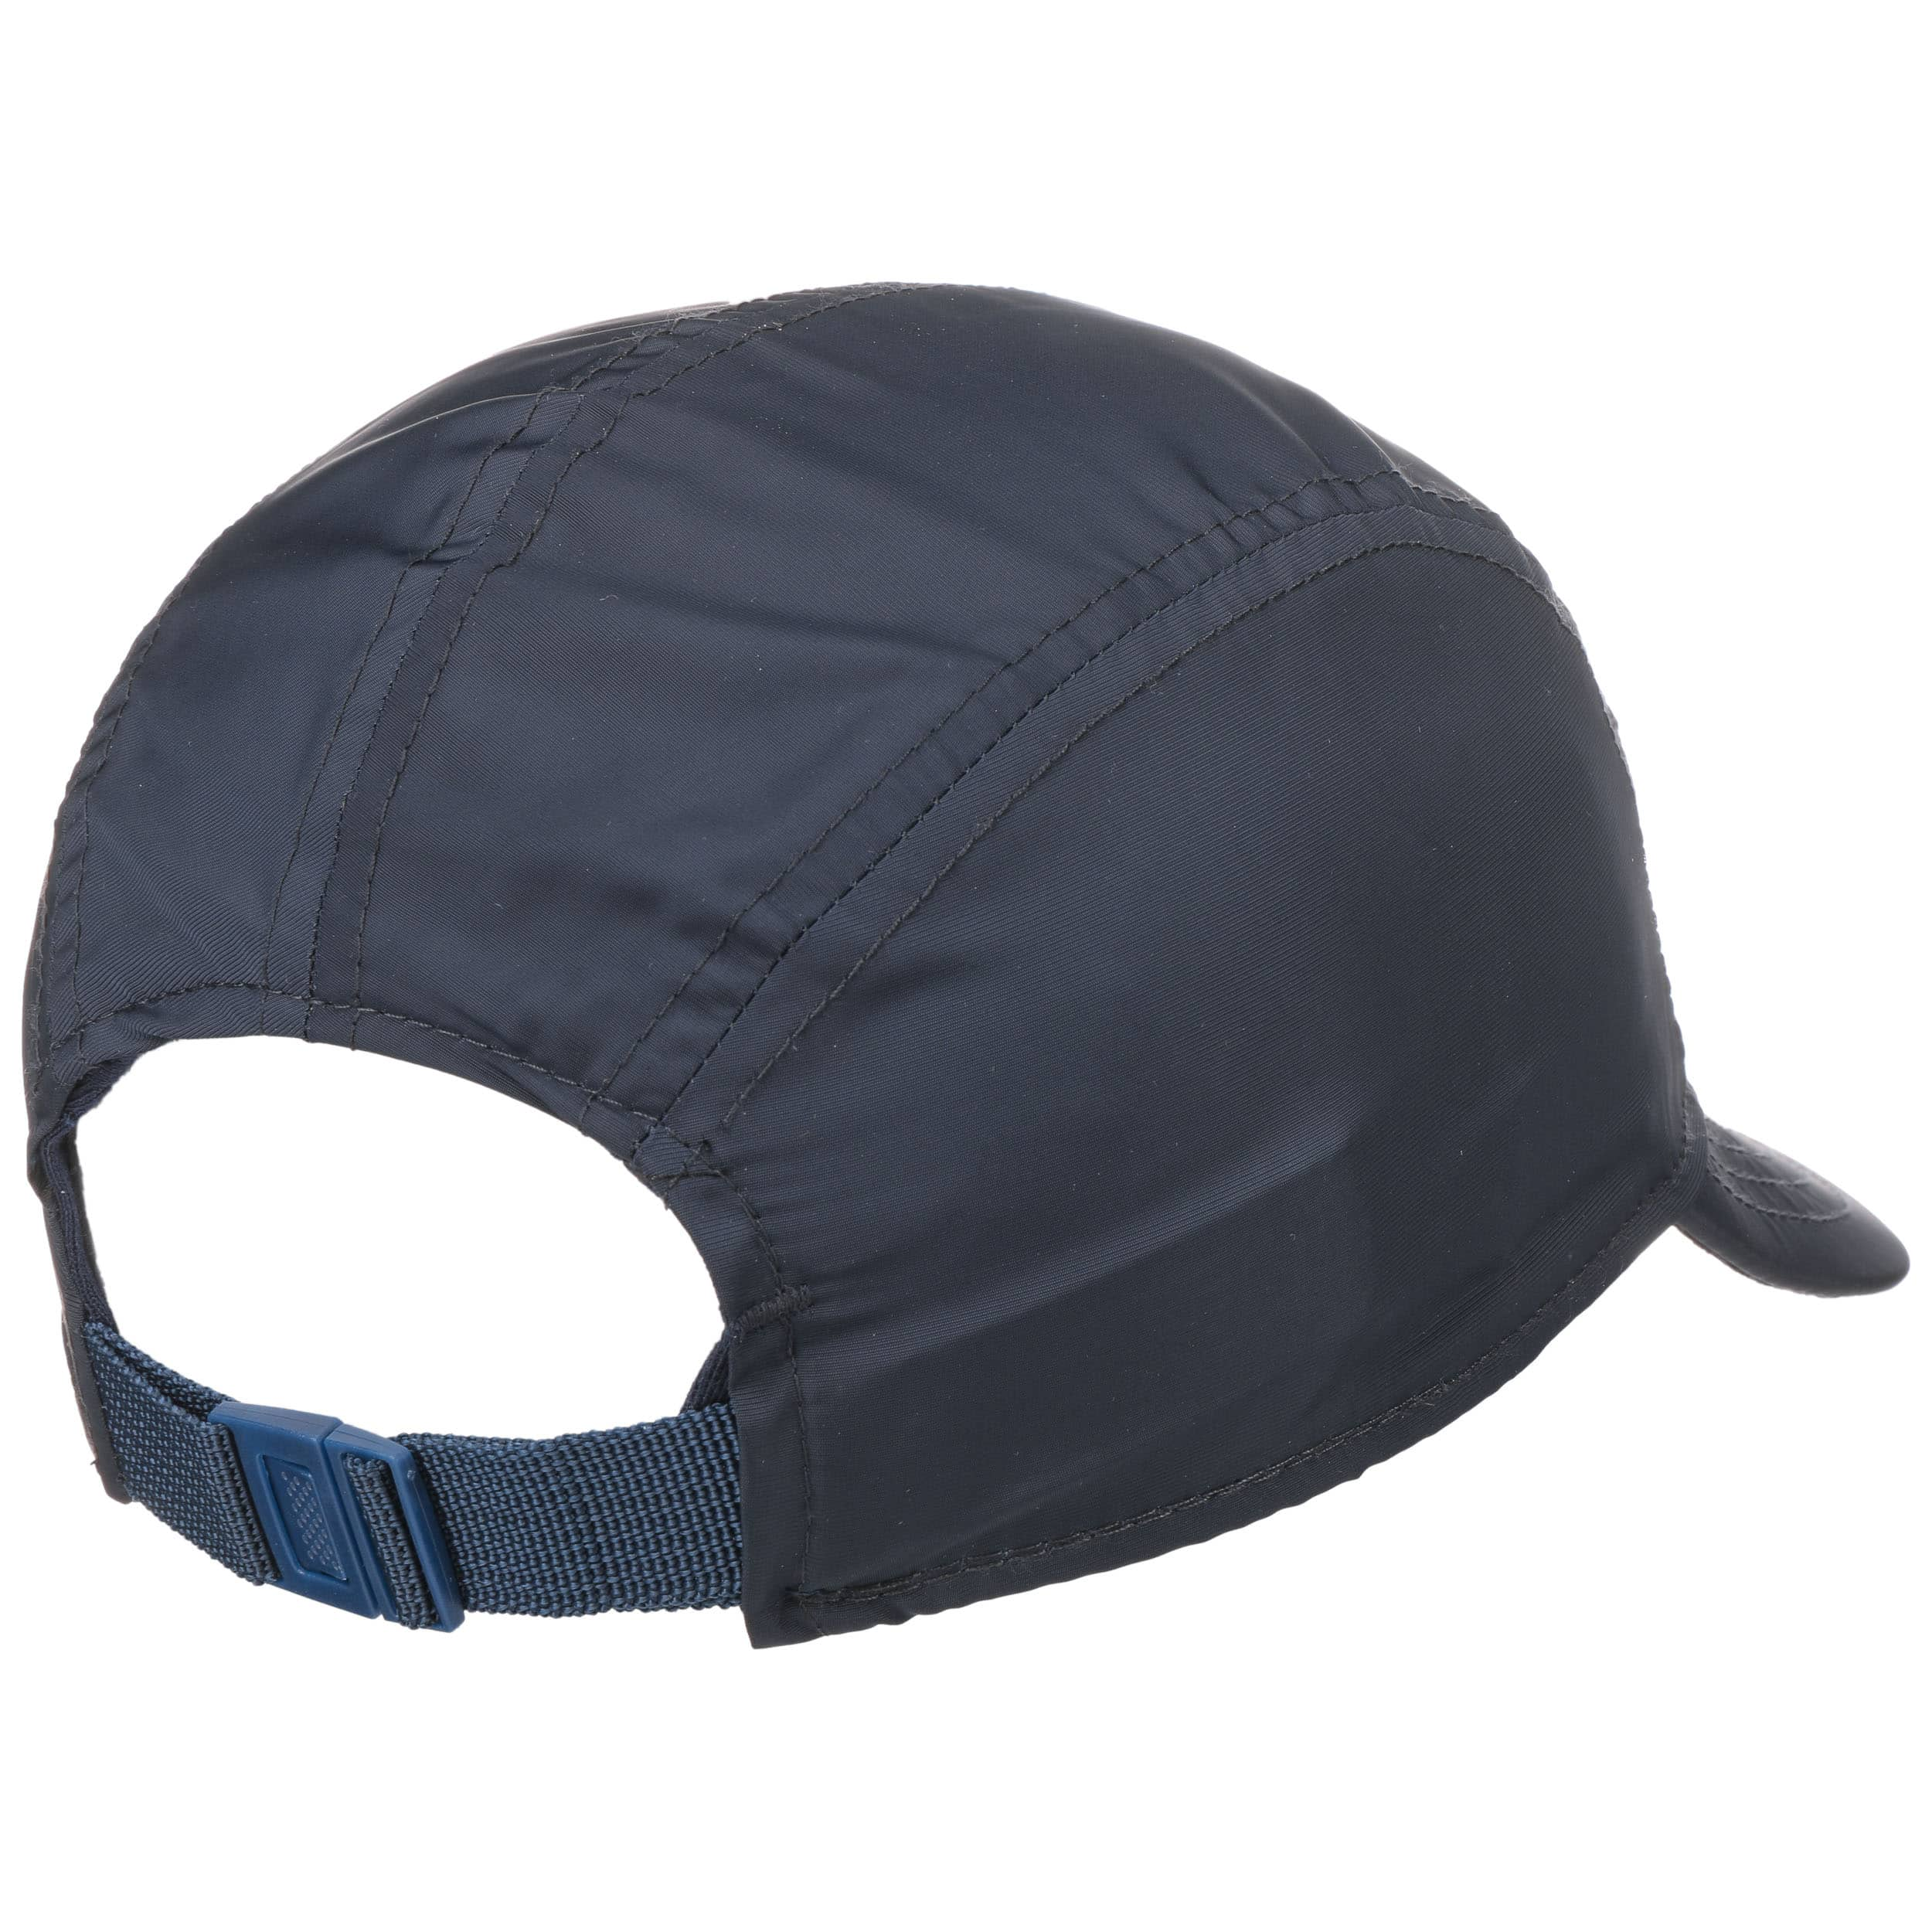 0a6d078227de22 ... Reversible Rain Camper Cap by New Era - navy 4 ...